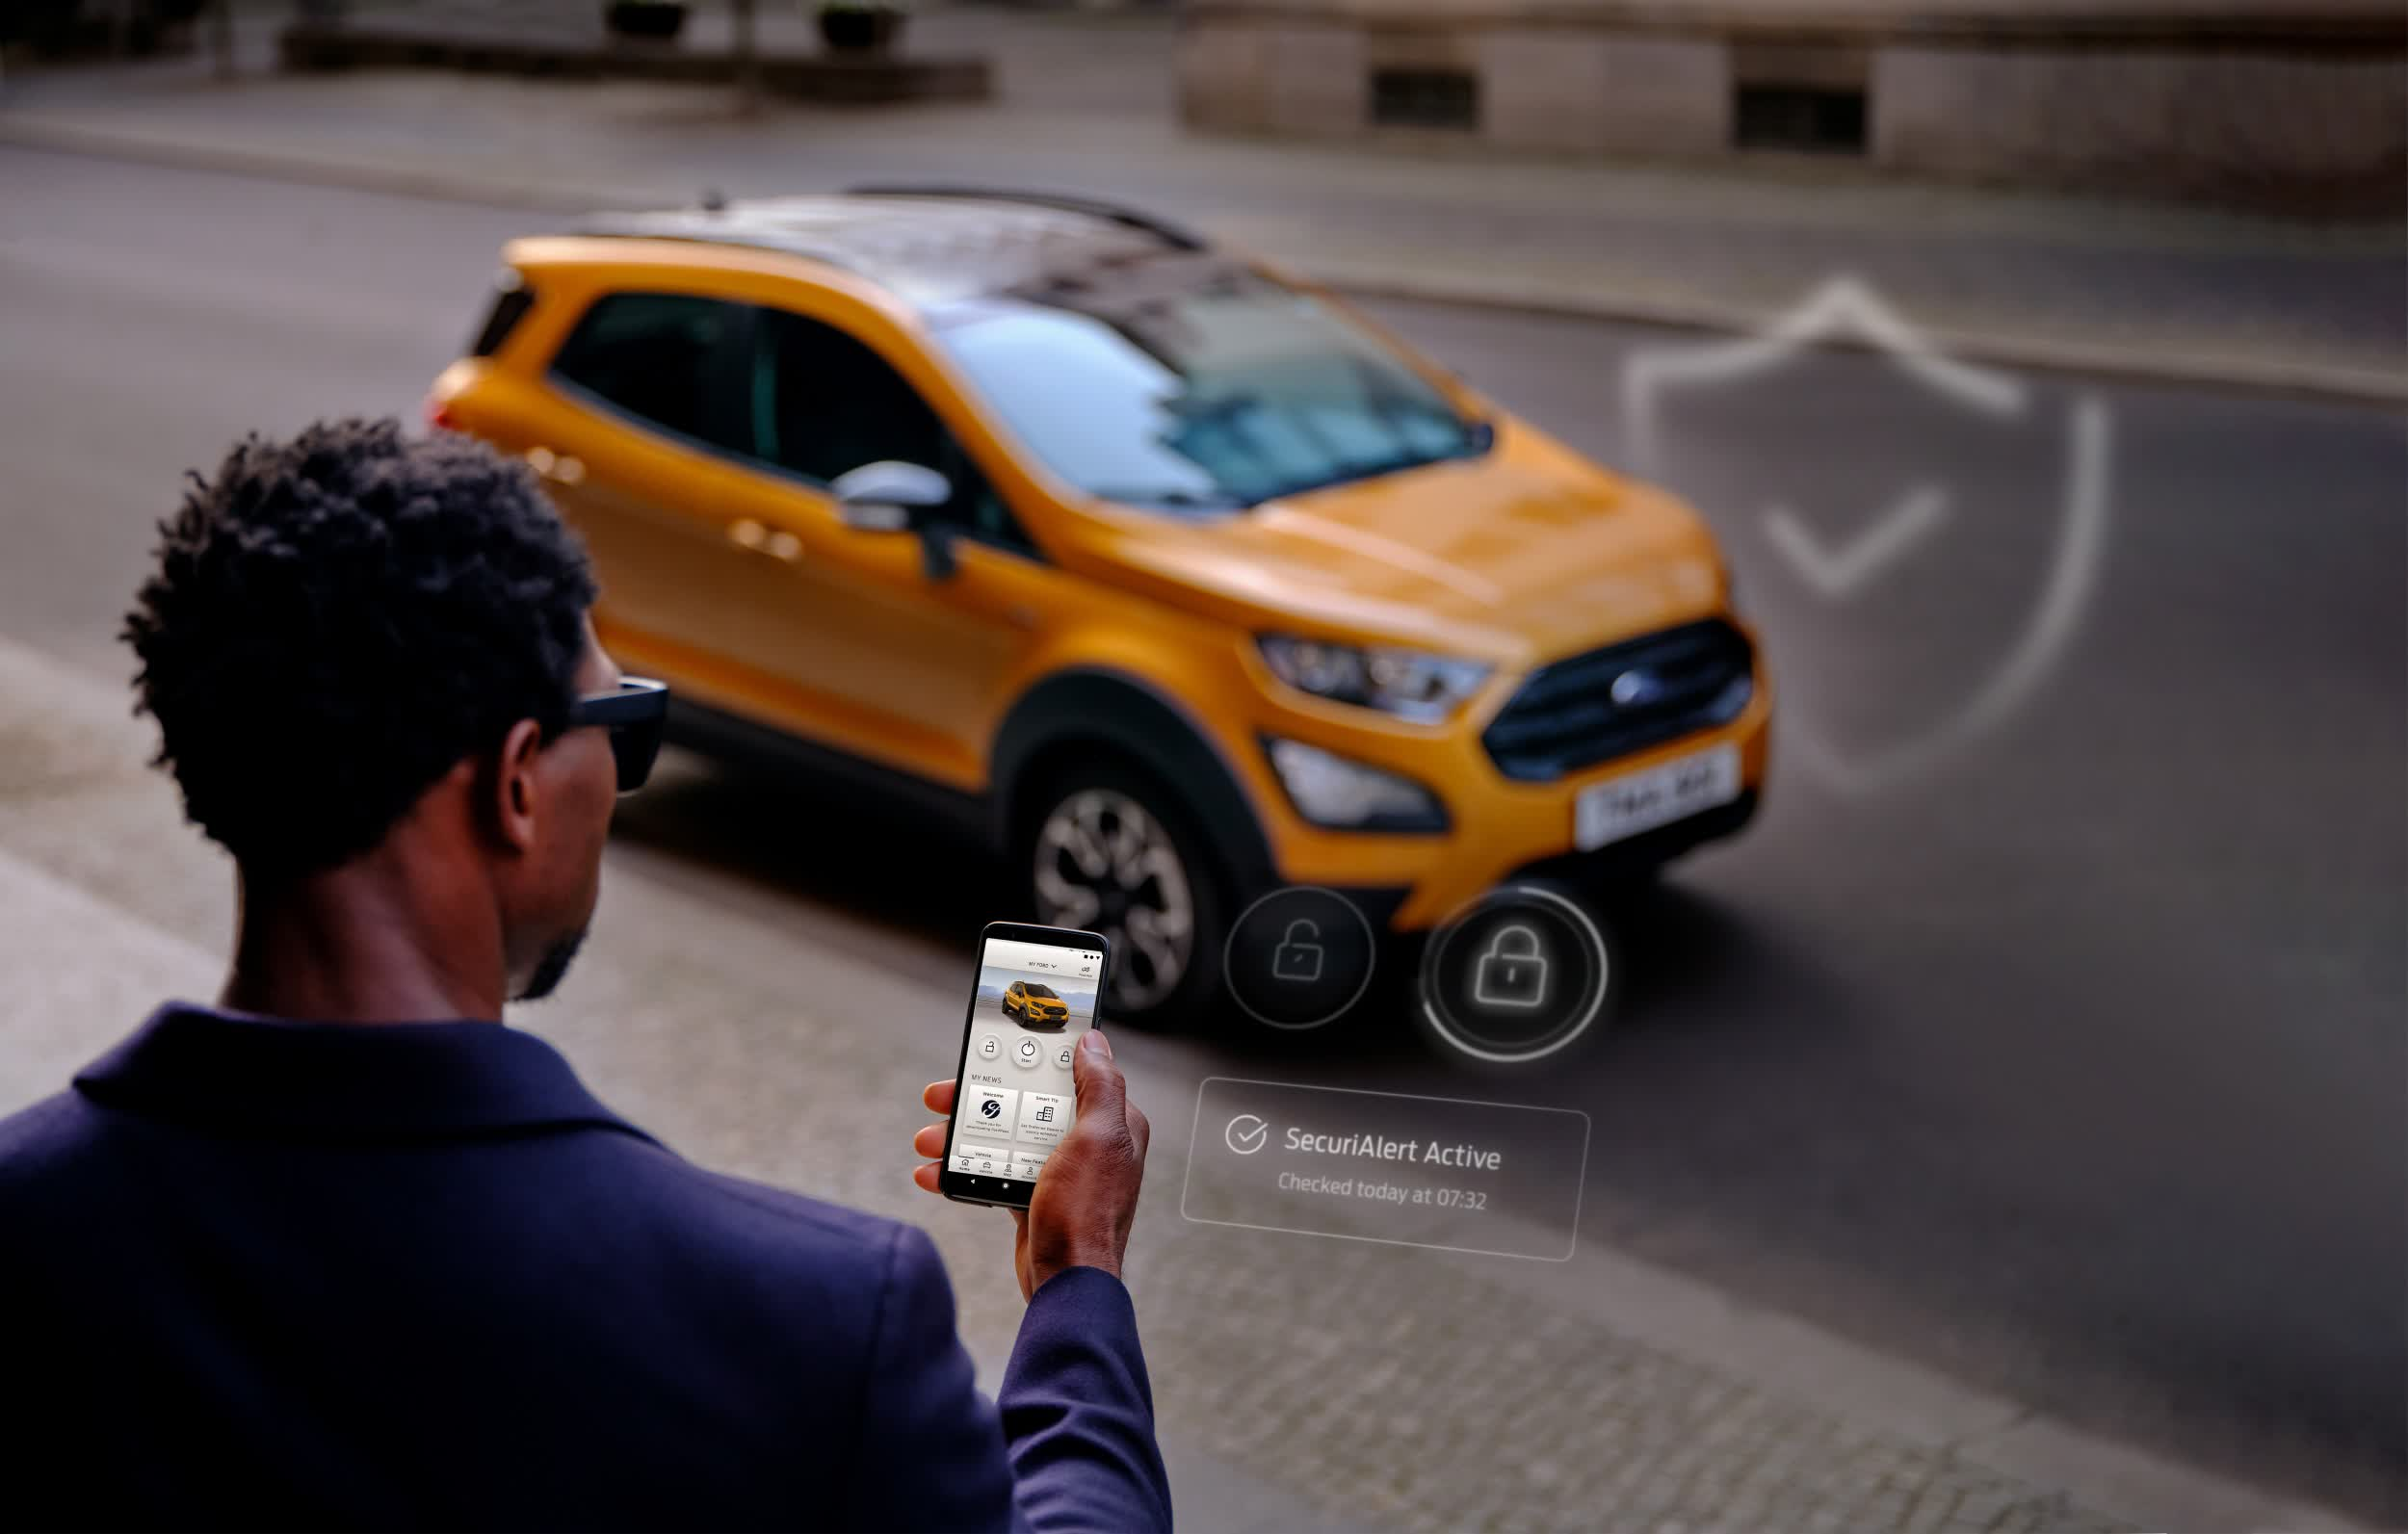 SecuriAlert is a smartphone connected alarm system for Ford owners